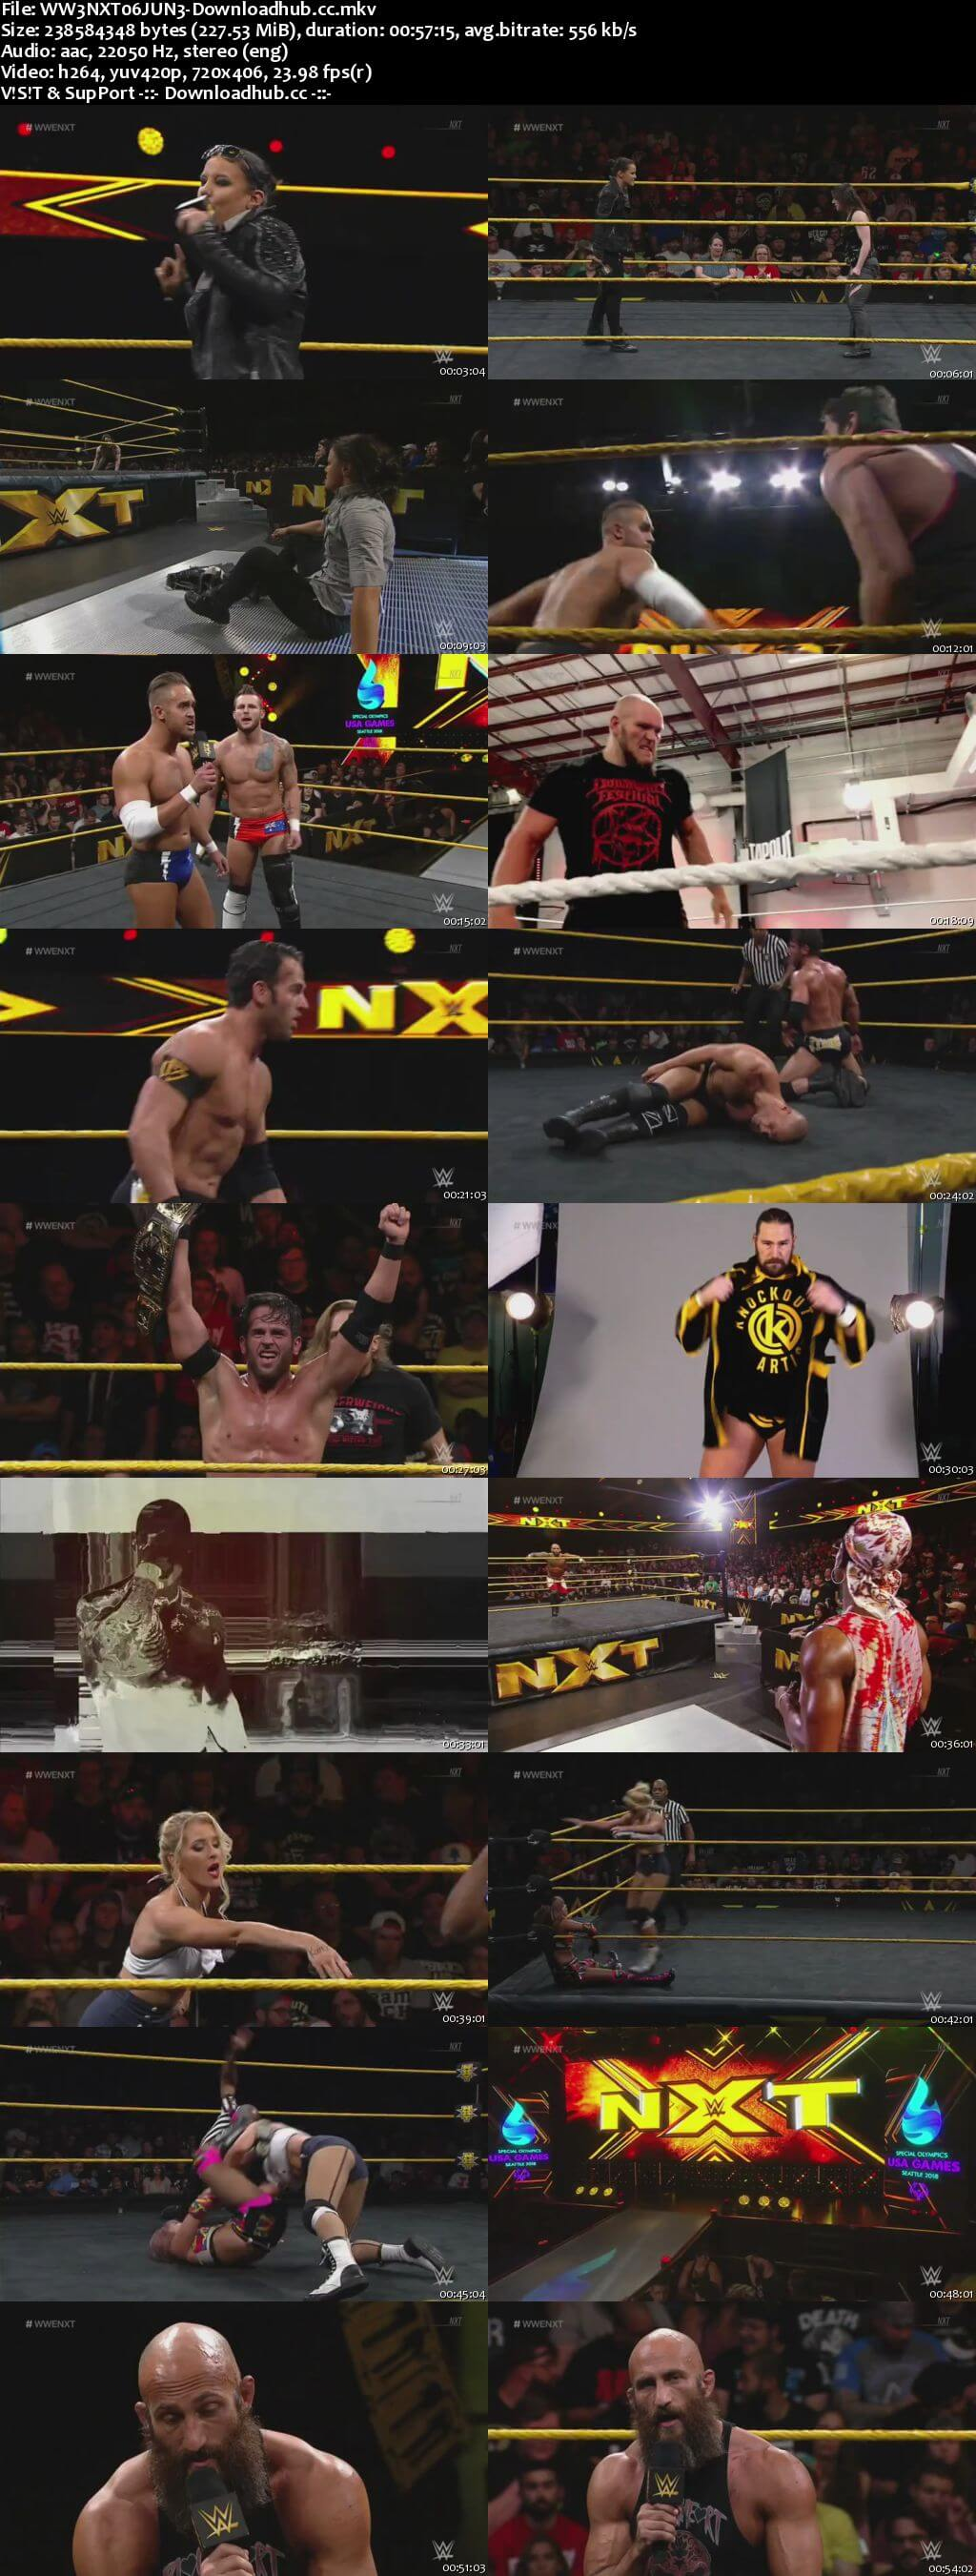 WWE NXT 06 June 2018 480p HDTV Download